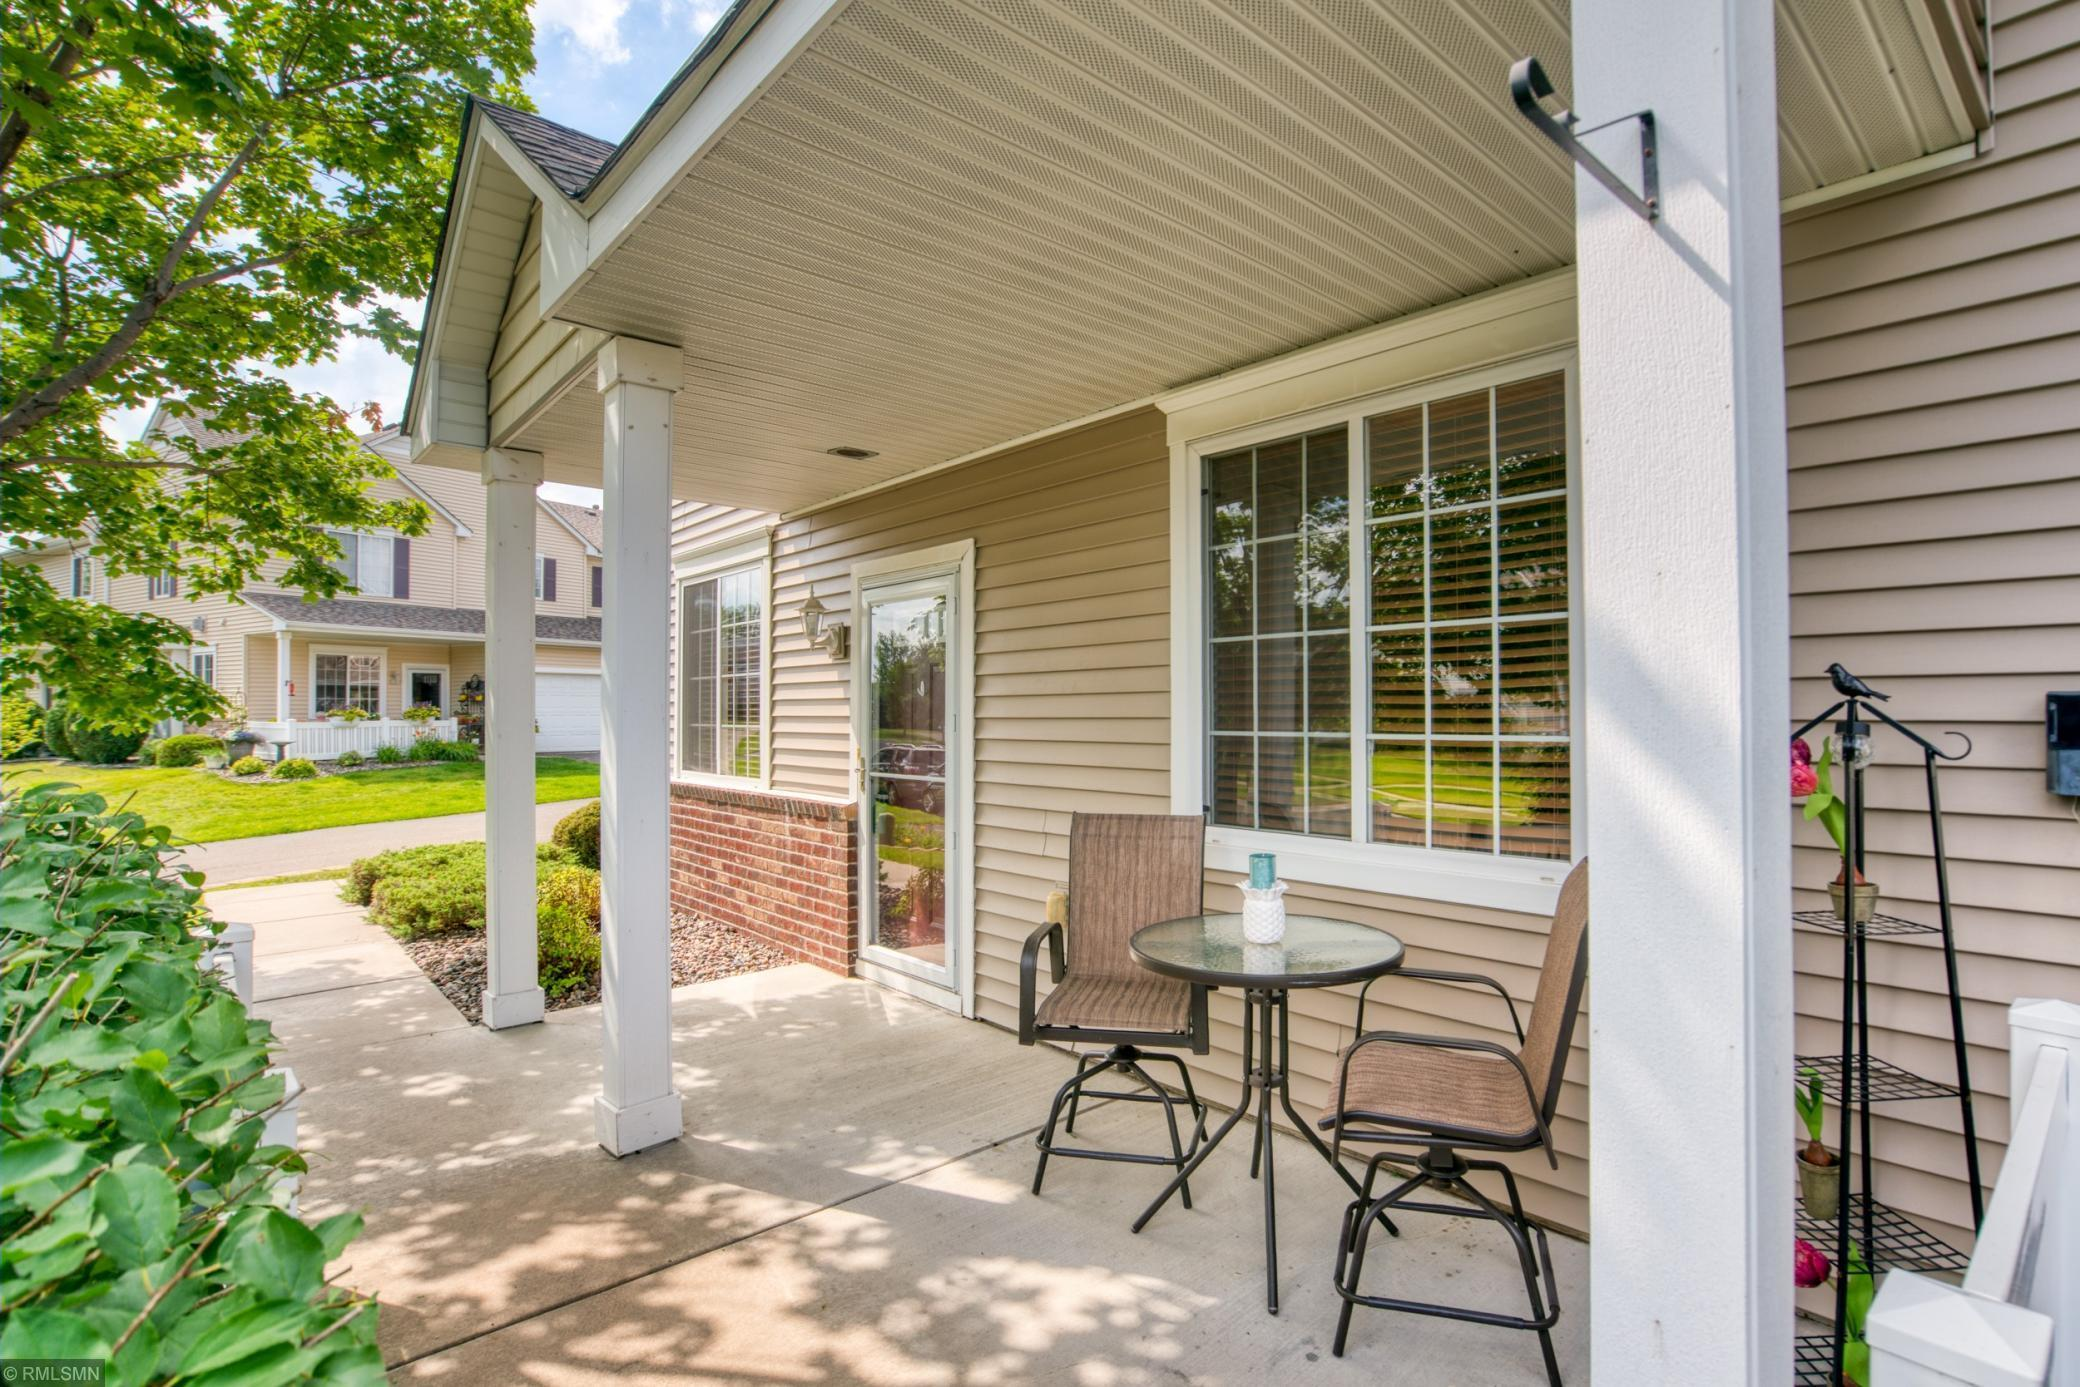 18474 98th N Property Photo - Maple Grove, MN real estate listing